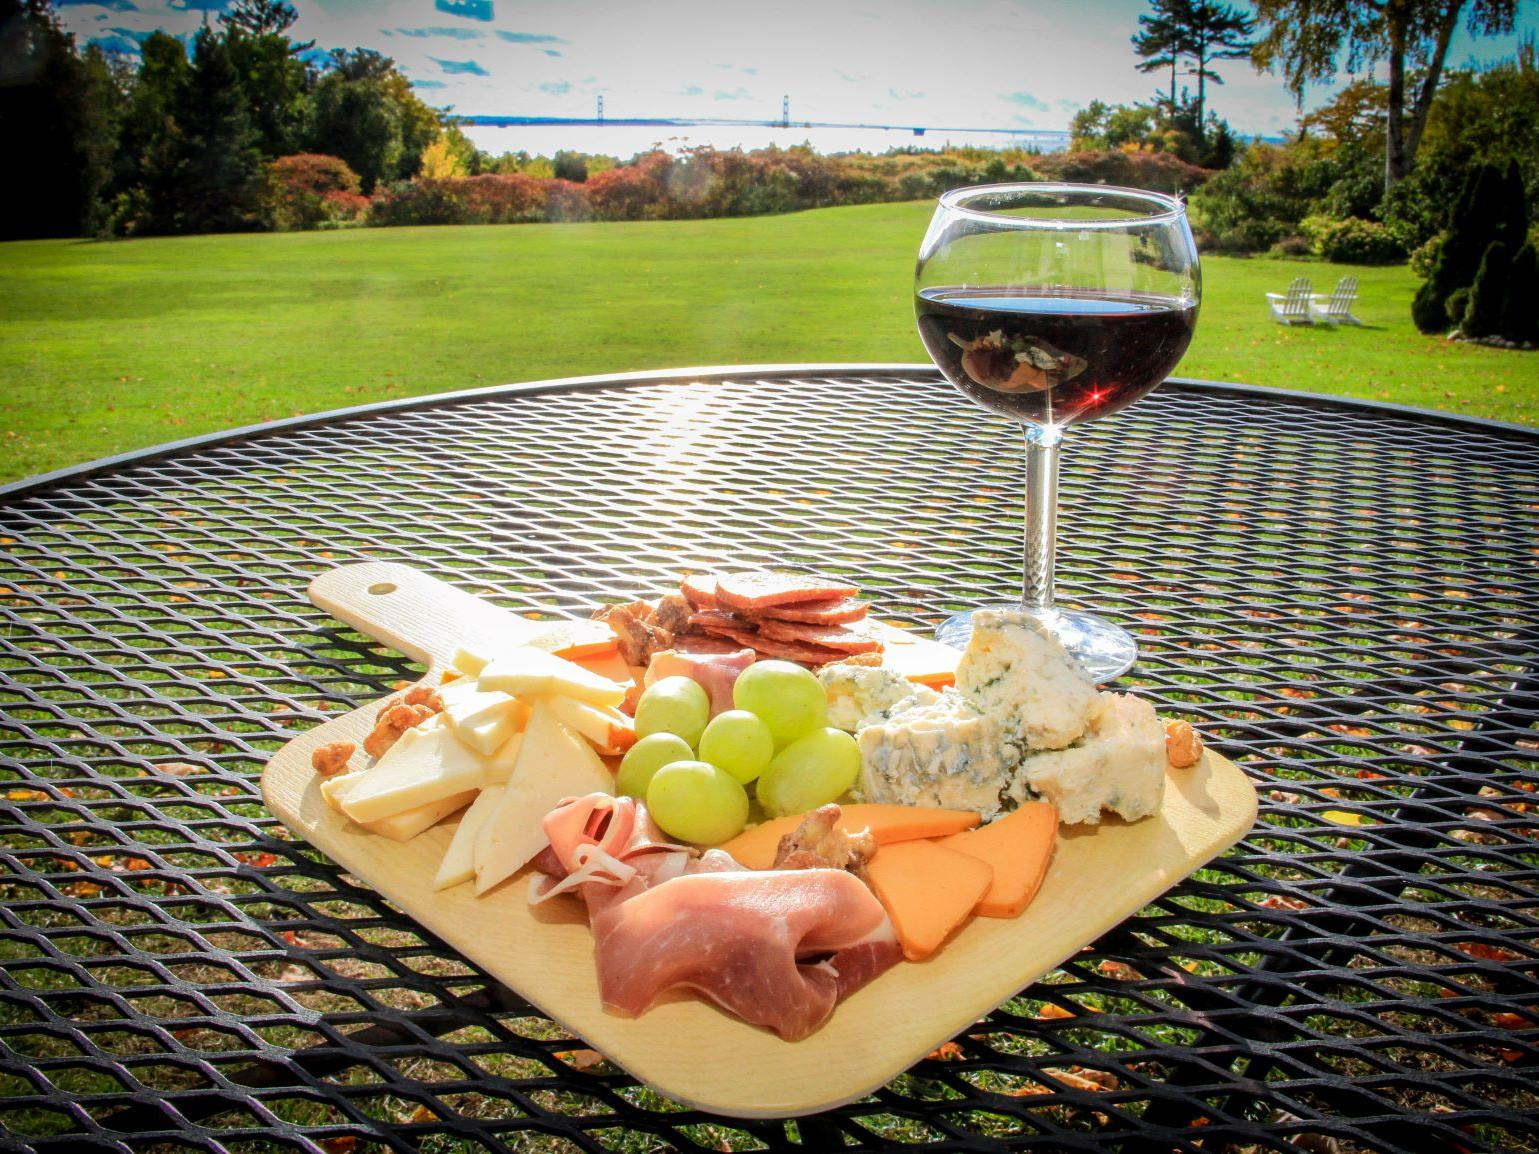 The Lawn Wine & Cheese